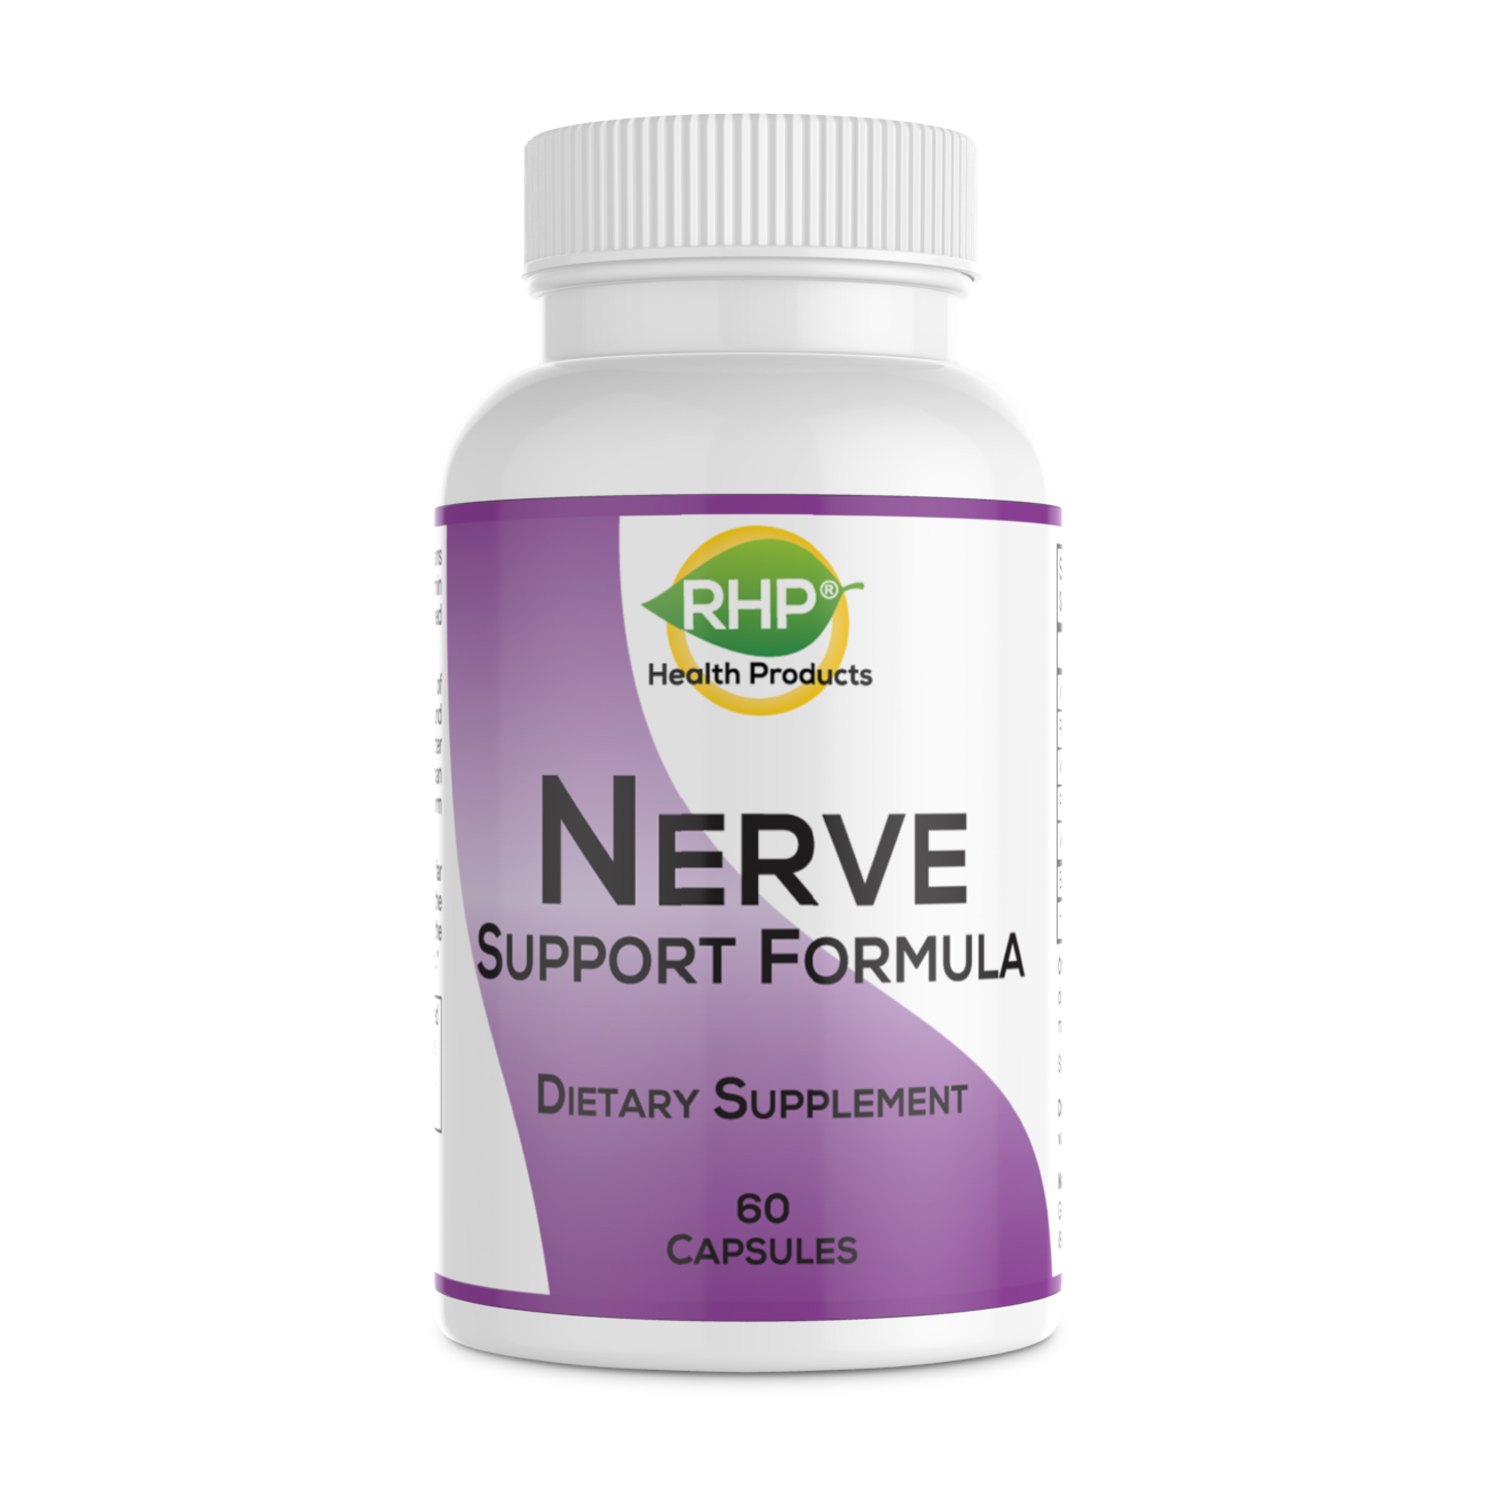 Nerve Support Formula for the Nutritional Support of Peripheral Neuropathy and Nerve Pain Relief